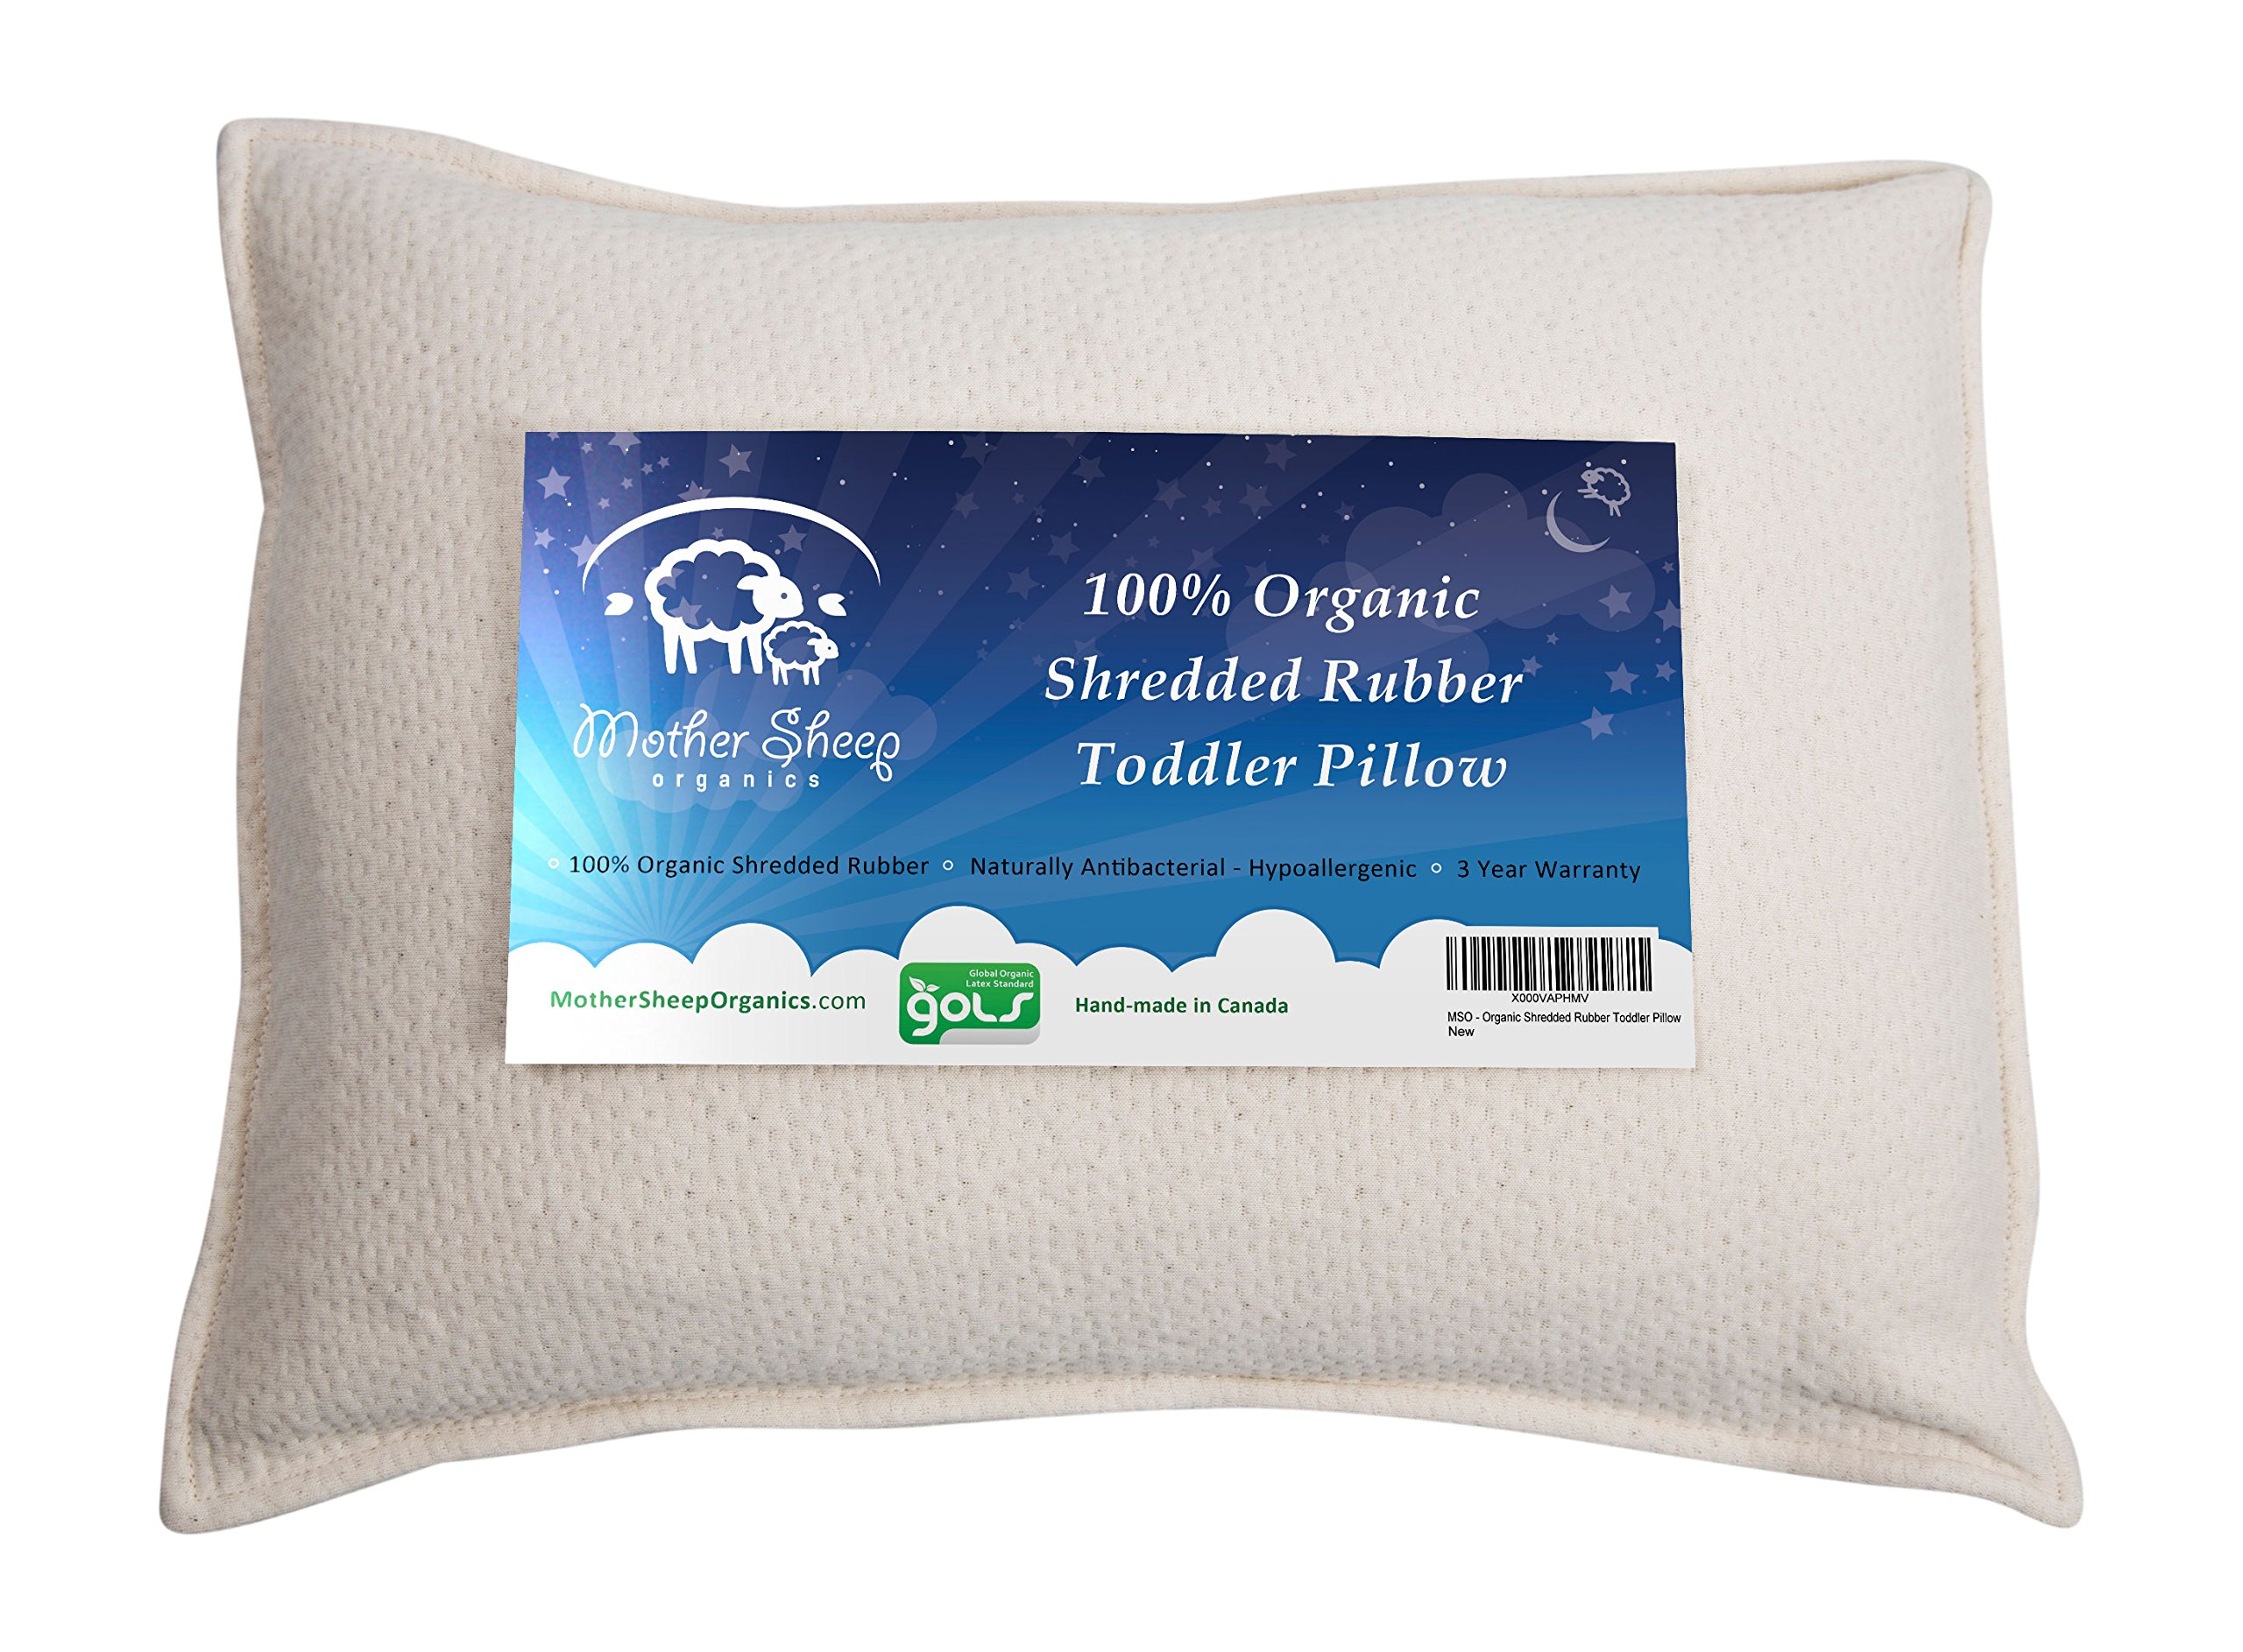 Organic Rubber Toddler Pillow, All Natural and 100% GOLS Certified Pure Organic, Shredded Rubber Filling, Machine Washable, Natural Antibacterial & Hypoallergenic, 3 Year Warranty 14x19